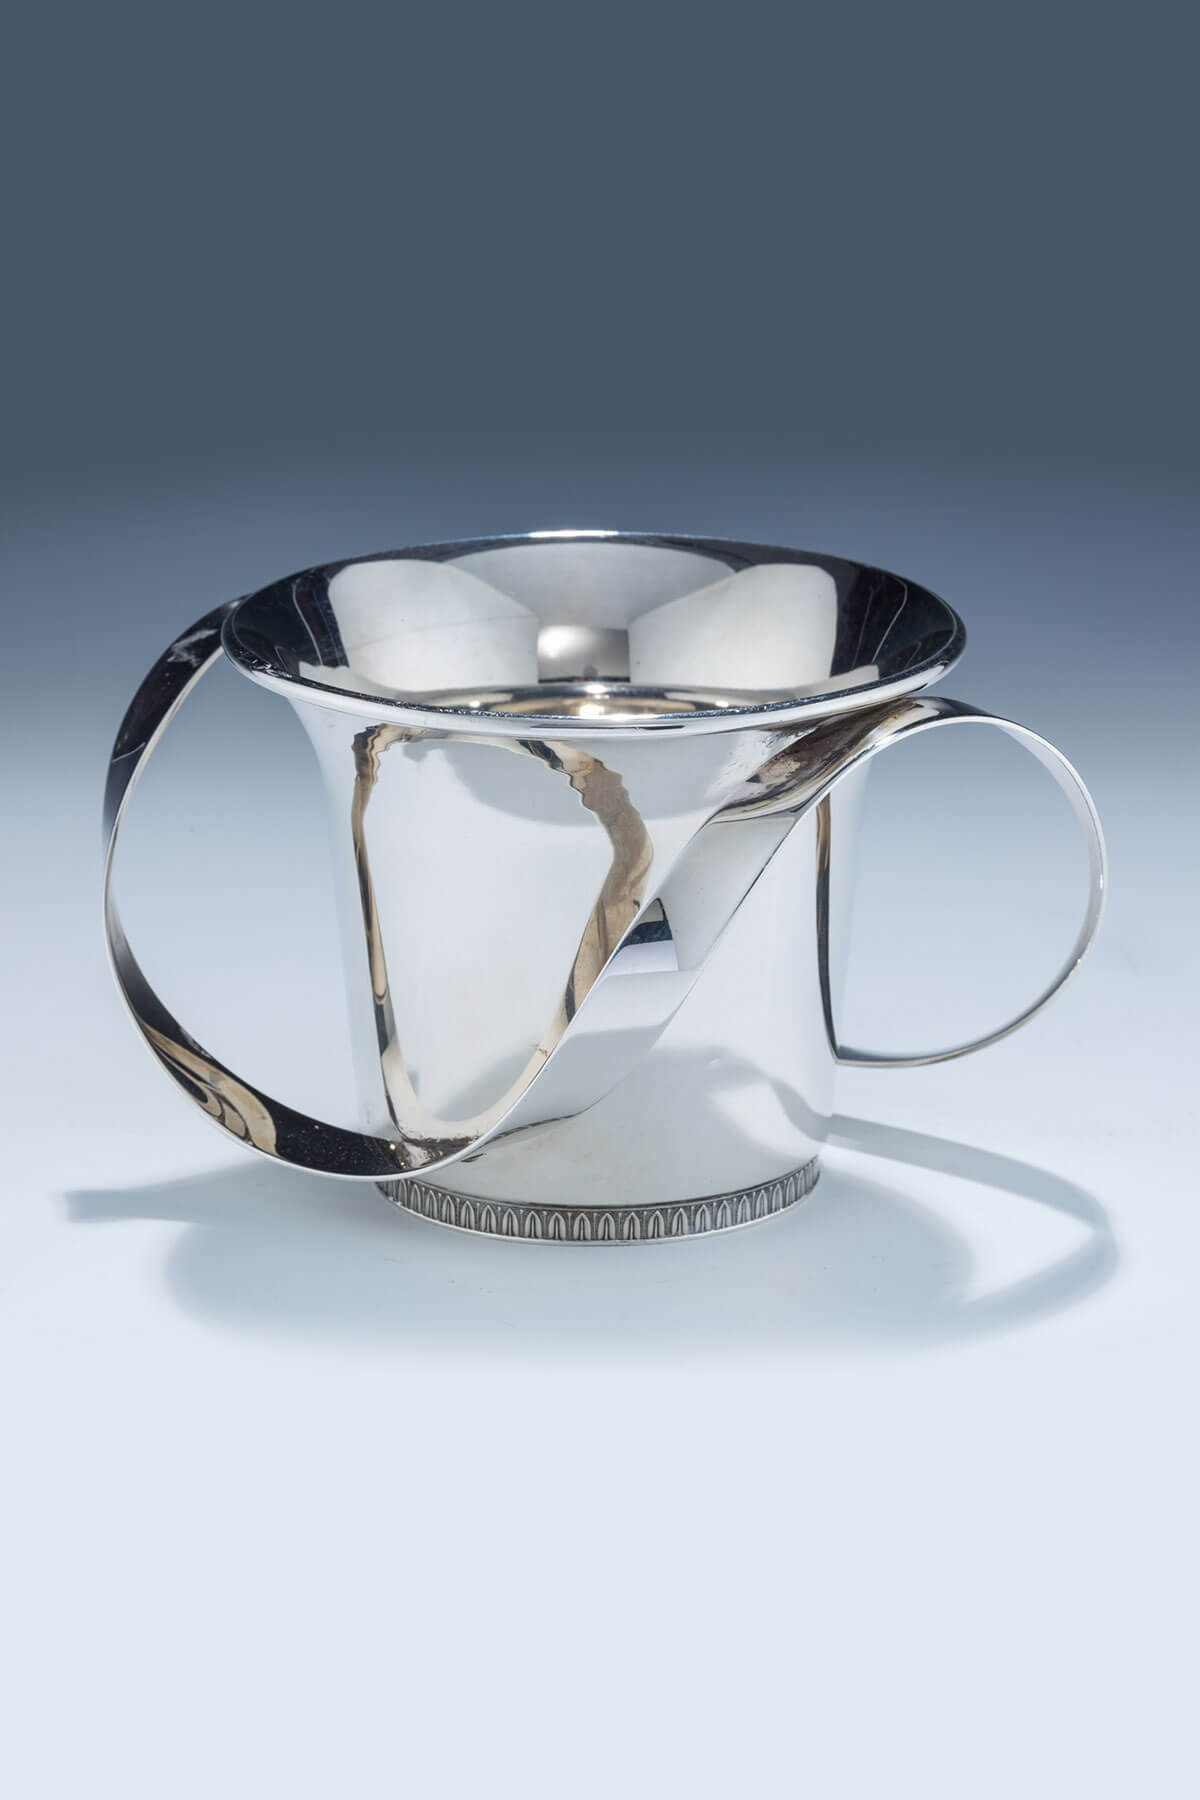 148. A Large Sterling Silver Washing Cup by Carmel Shabi